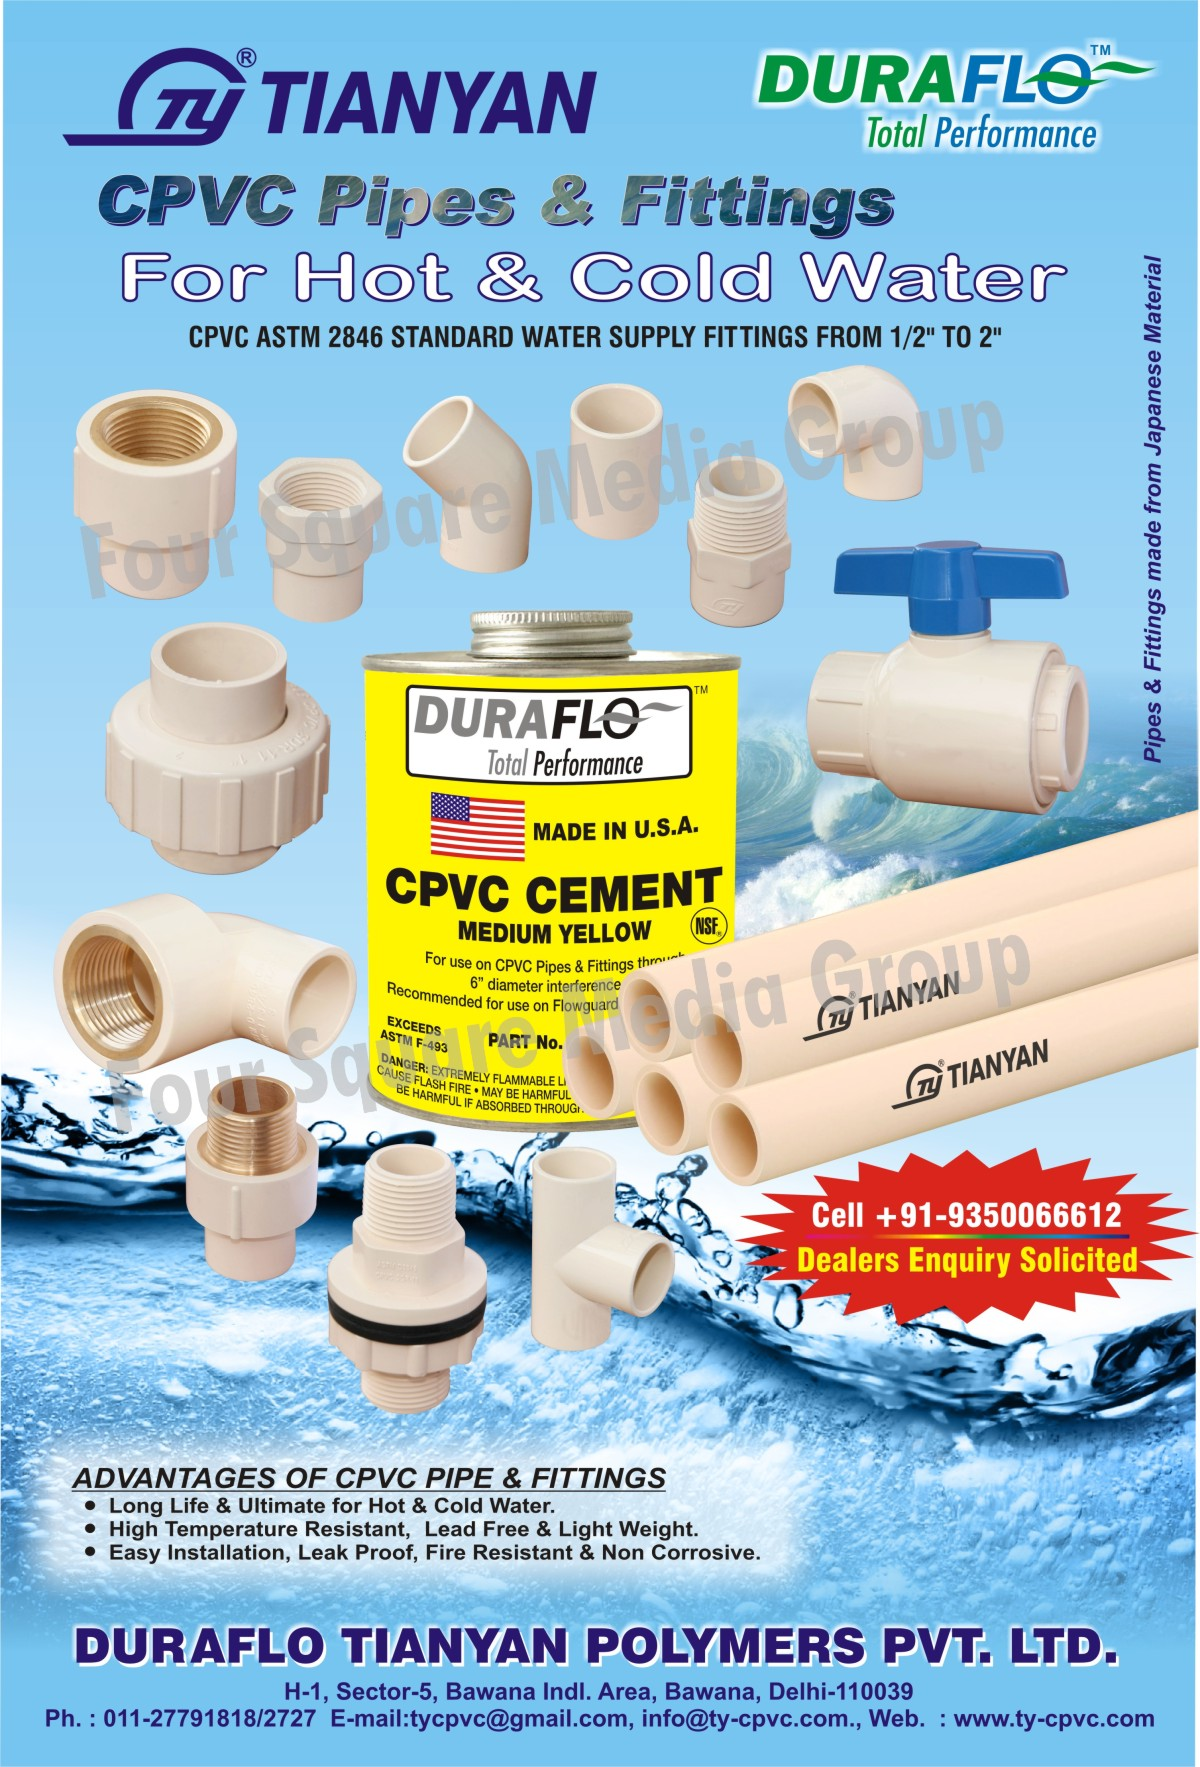 CPVC Pipes For Hot Waters, CPVC Pipes For Cold Waters, CPVC Pipe Fittings For Hot Water, CPVC Pipe Fittings For Cold Waters,CPVC Pipes, Pipe Fittings